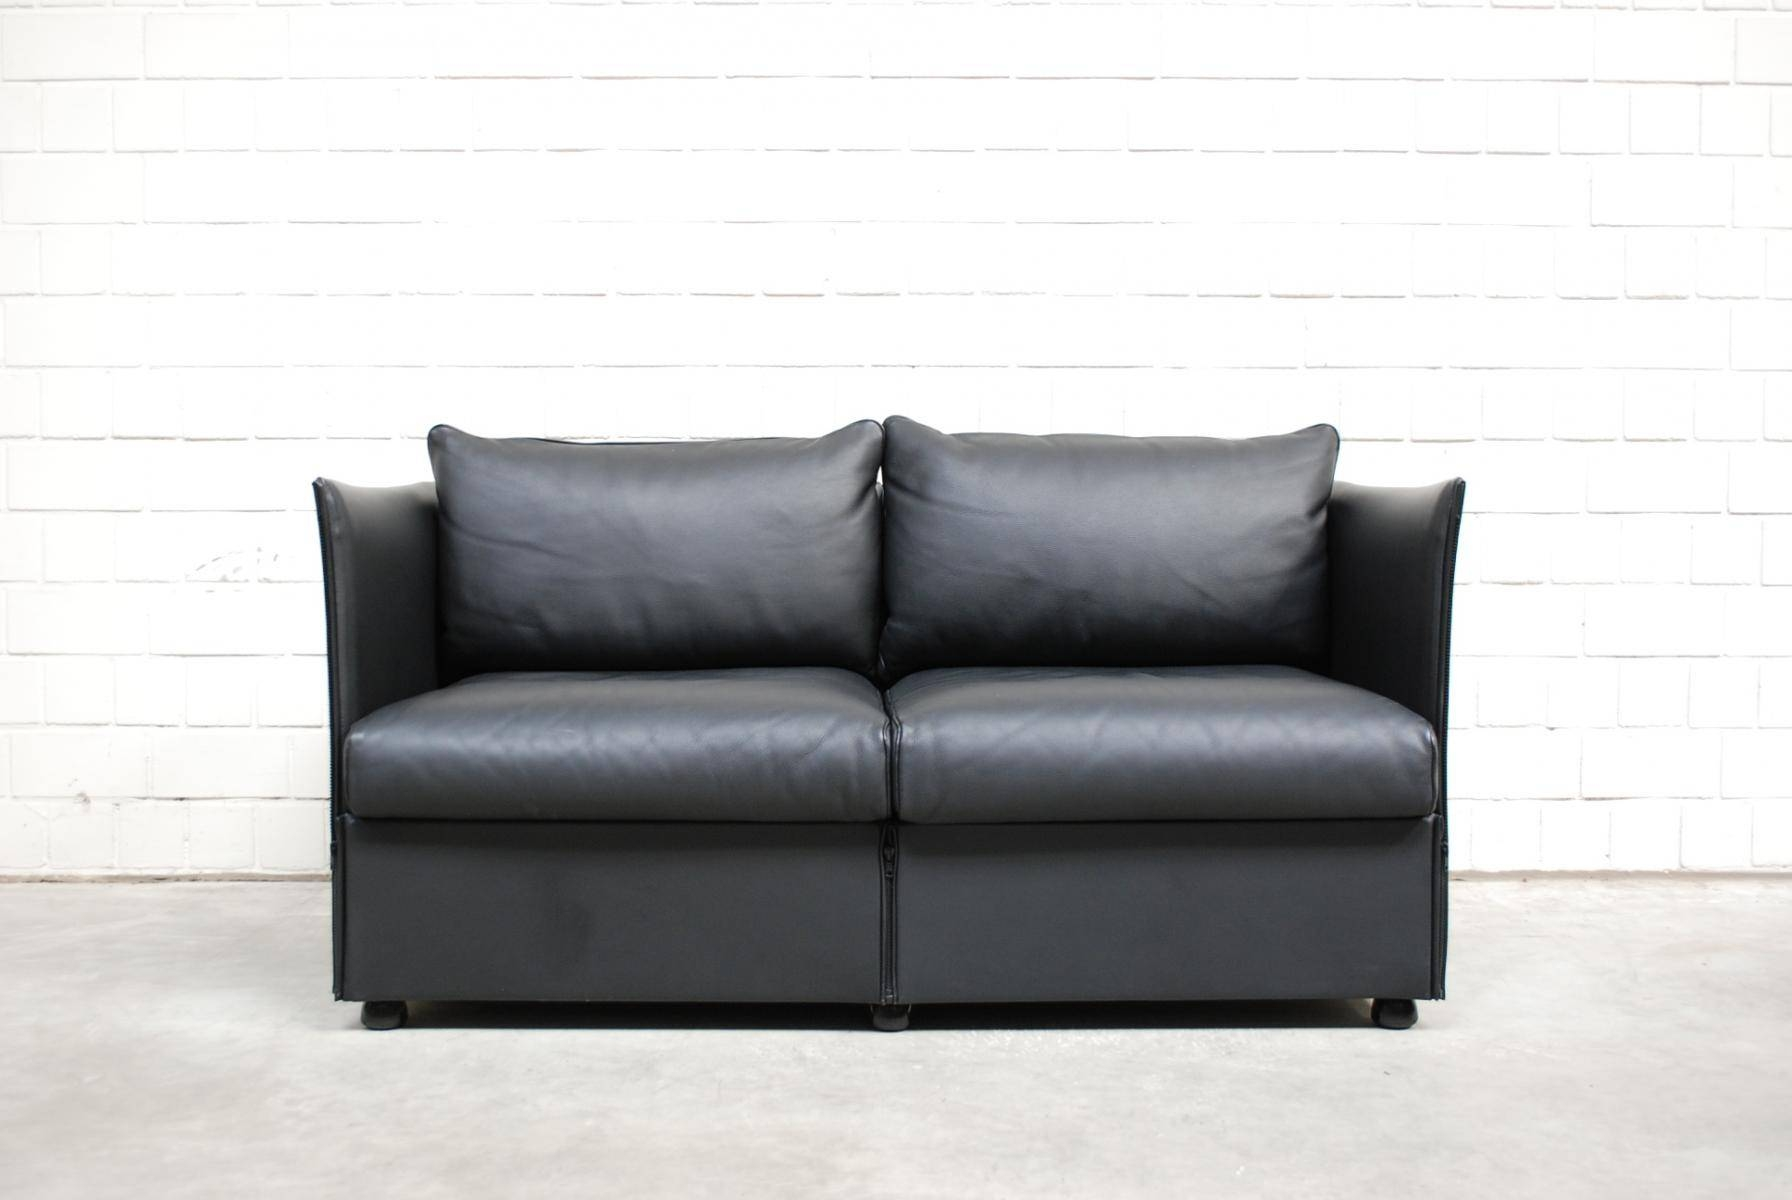 Model Landeau Leather Sofamario Bellini For Cassina, 1976 For throughout Bellini Couches (Image 8 of 15)